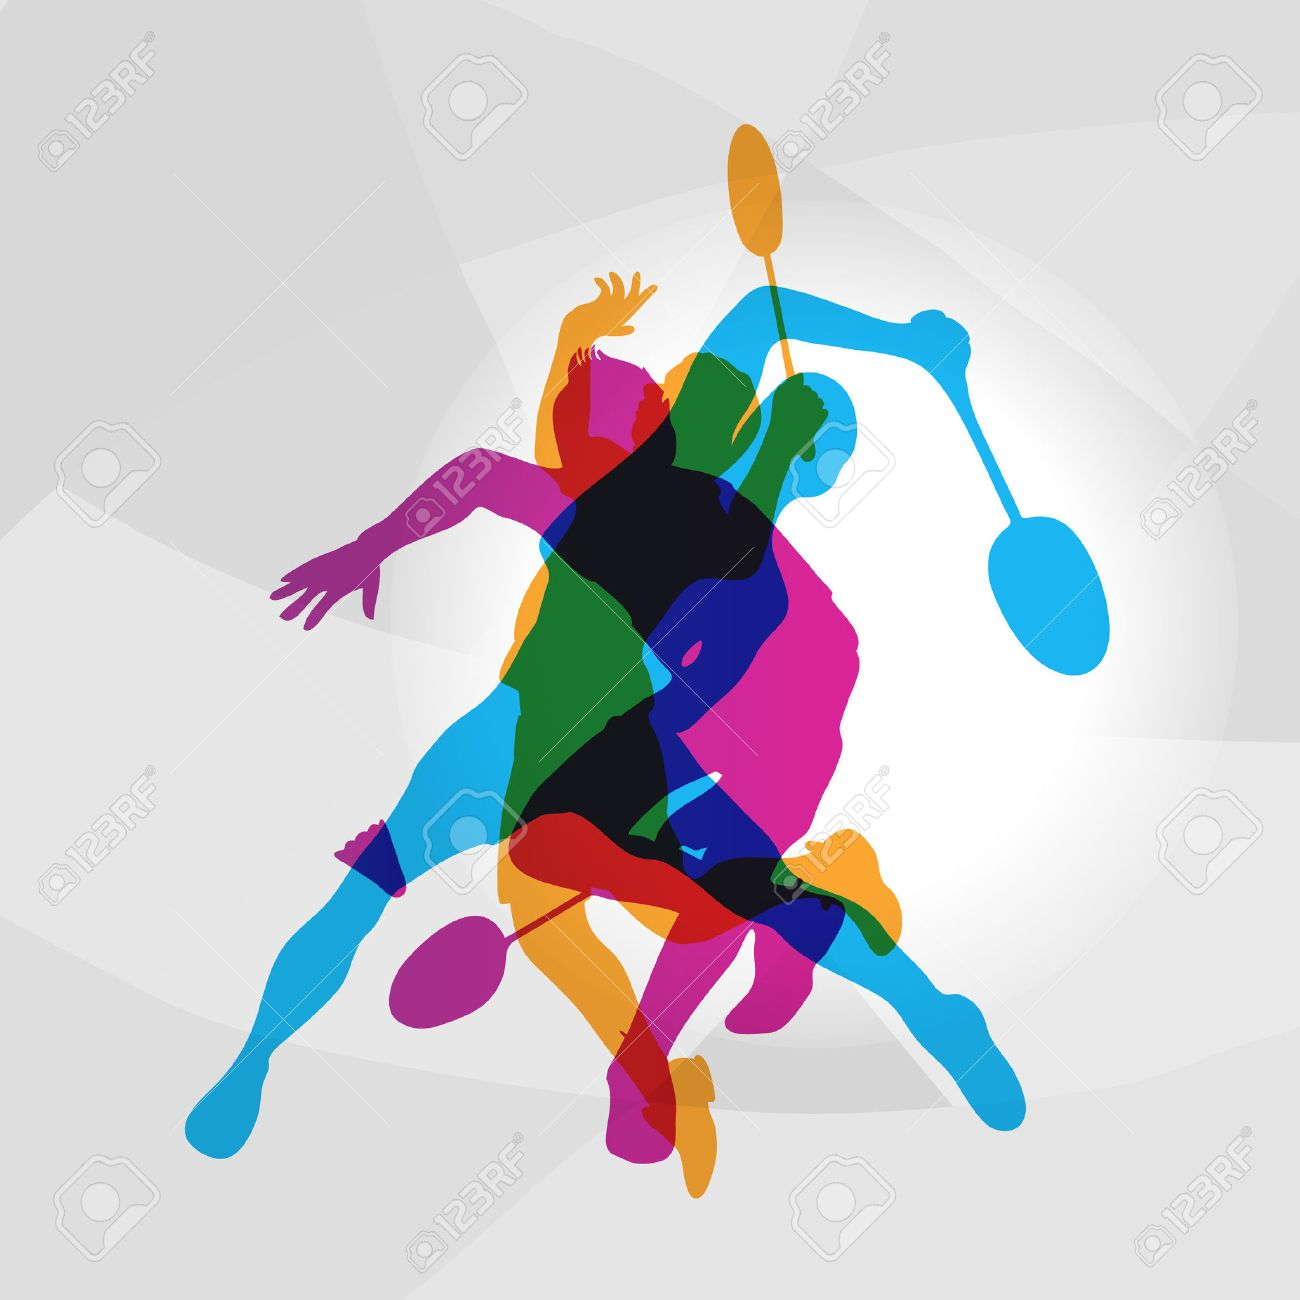 Modern Badminton Players In Action Logo Color Silhouettes Of